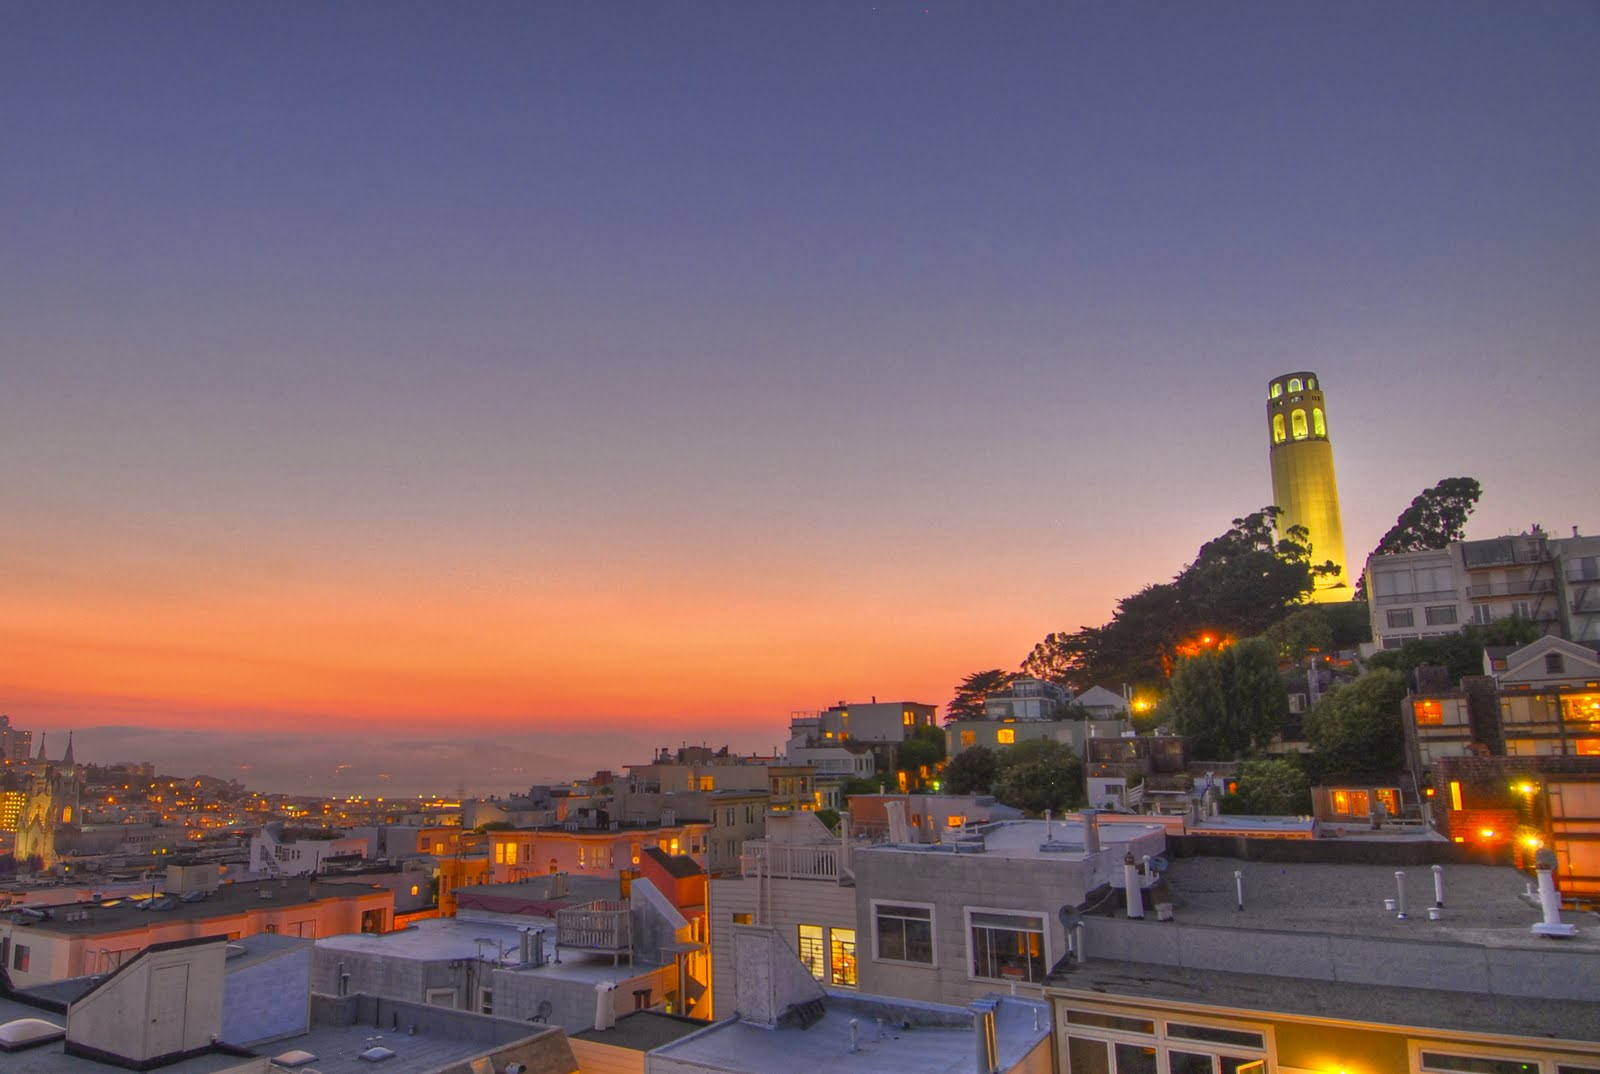 Free San Francisco's Coit Tower Stock Photo - FreeImages.com |Coit Tower Flowers